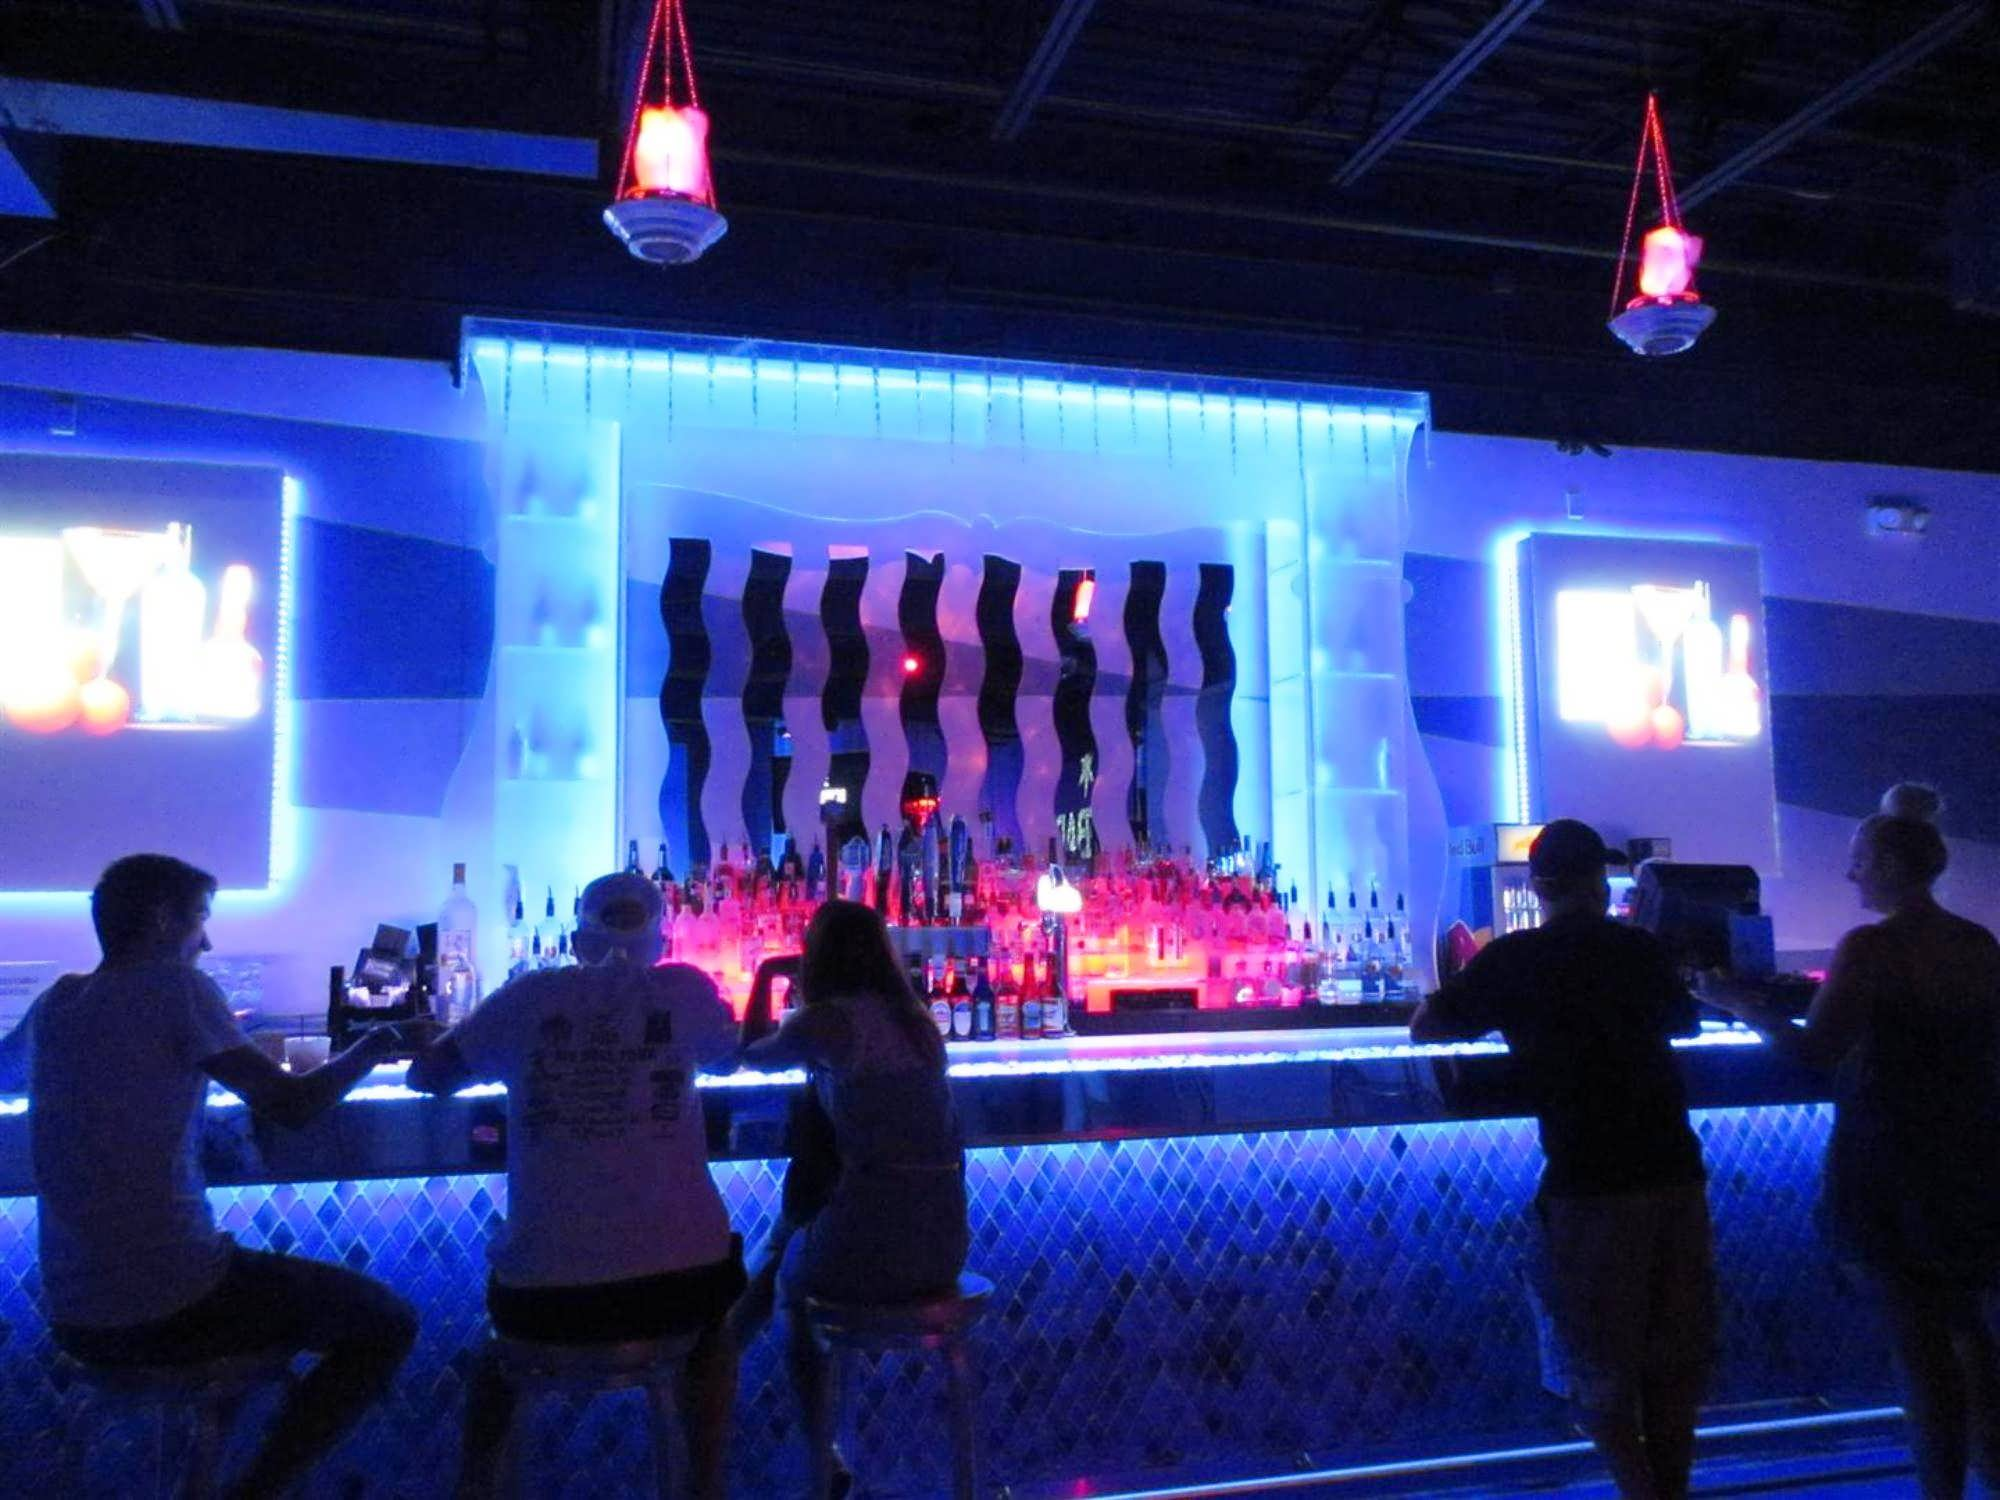 Icebar orlando on i drive get your next drink served with 50 tons icebar orlando on international drive aloadofball Image collections